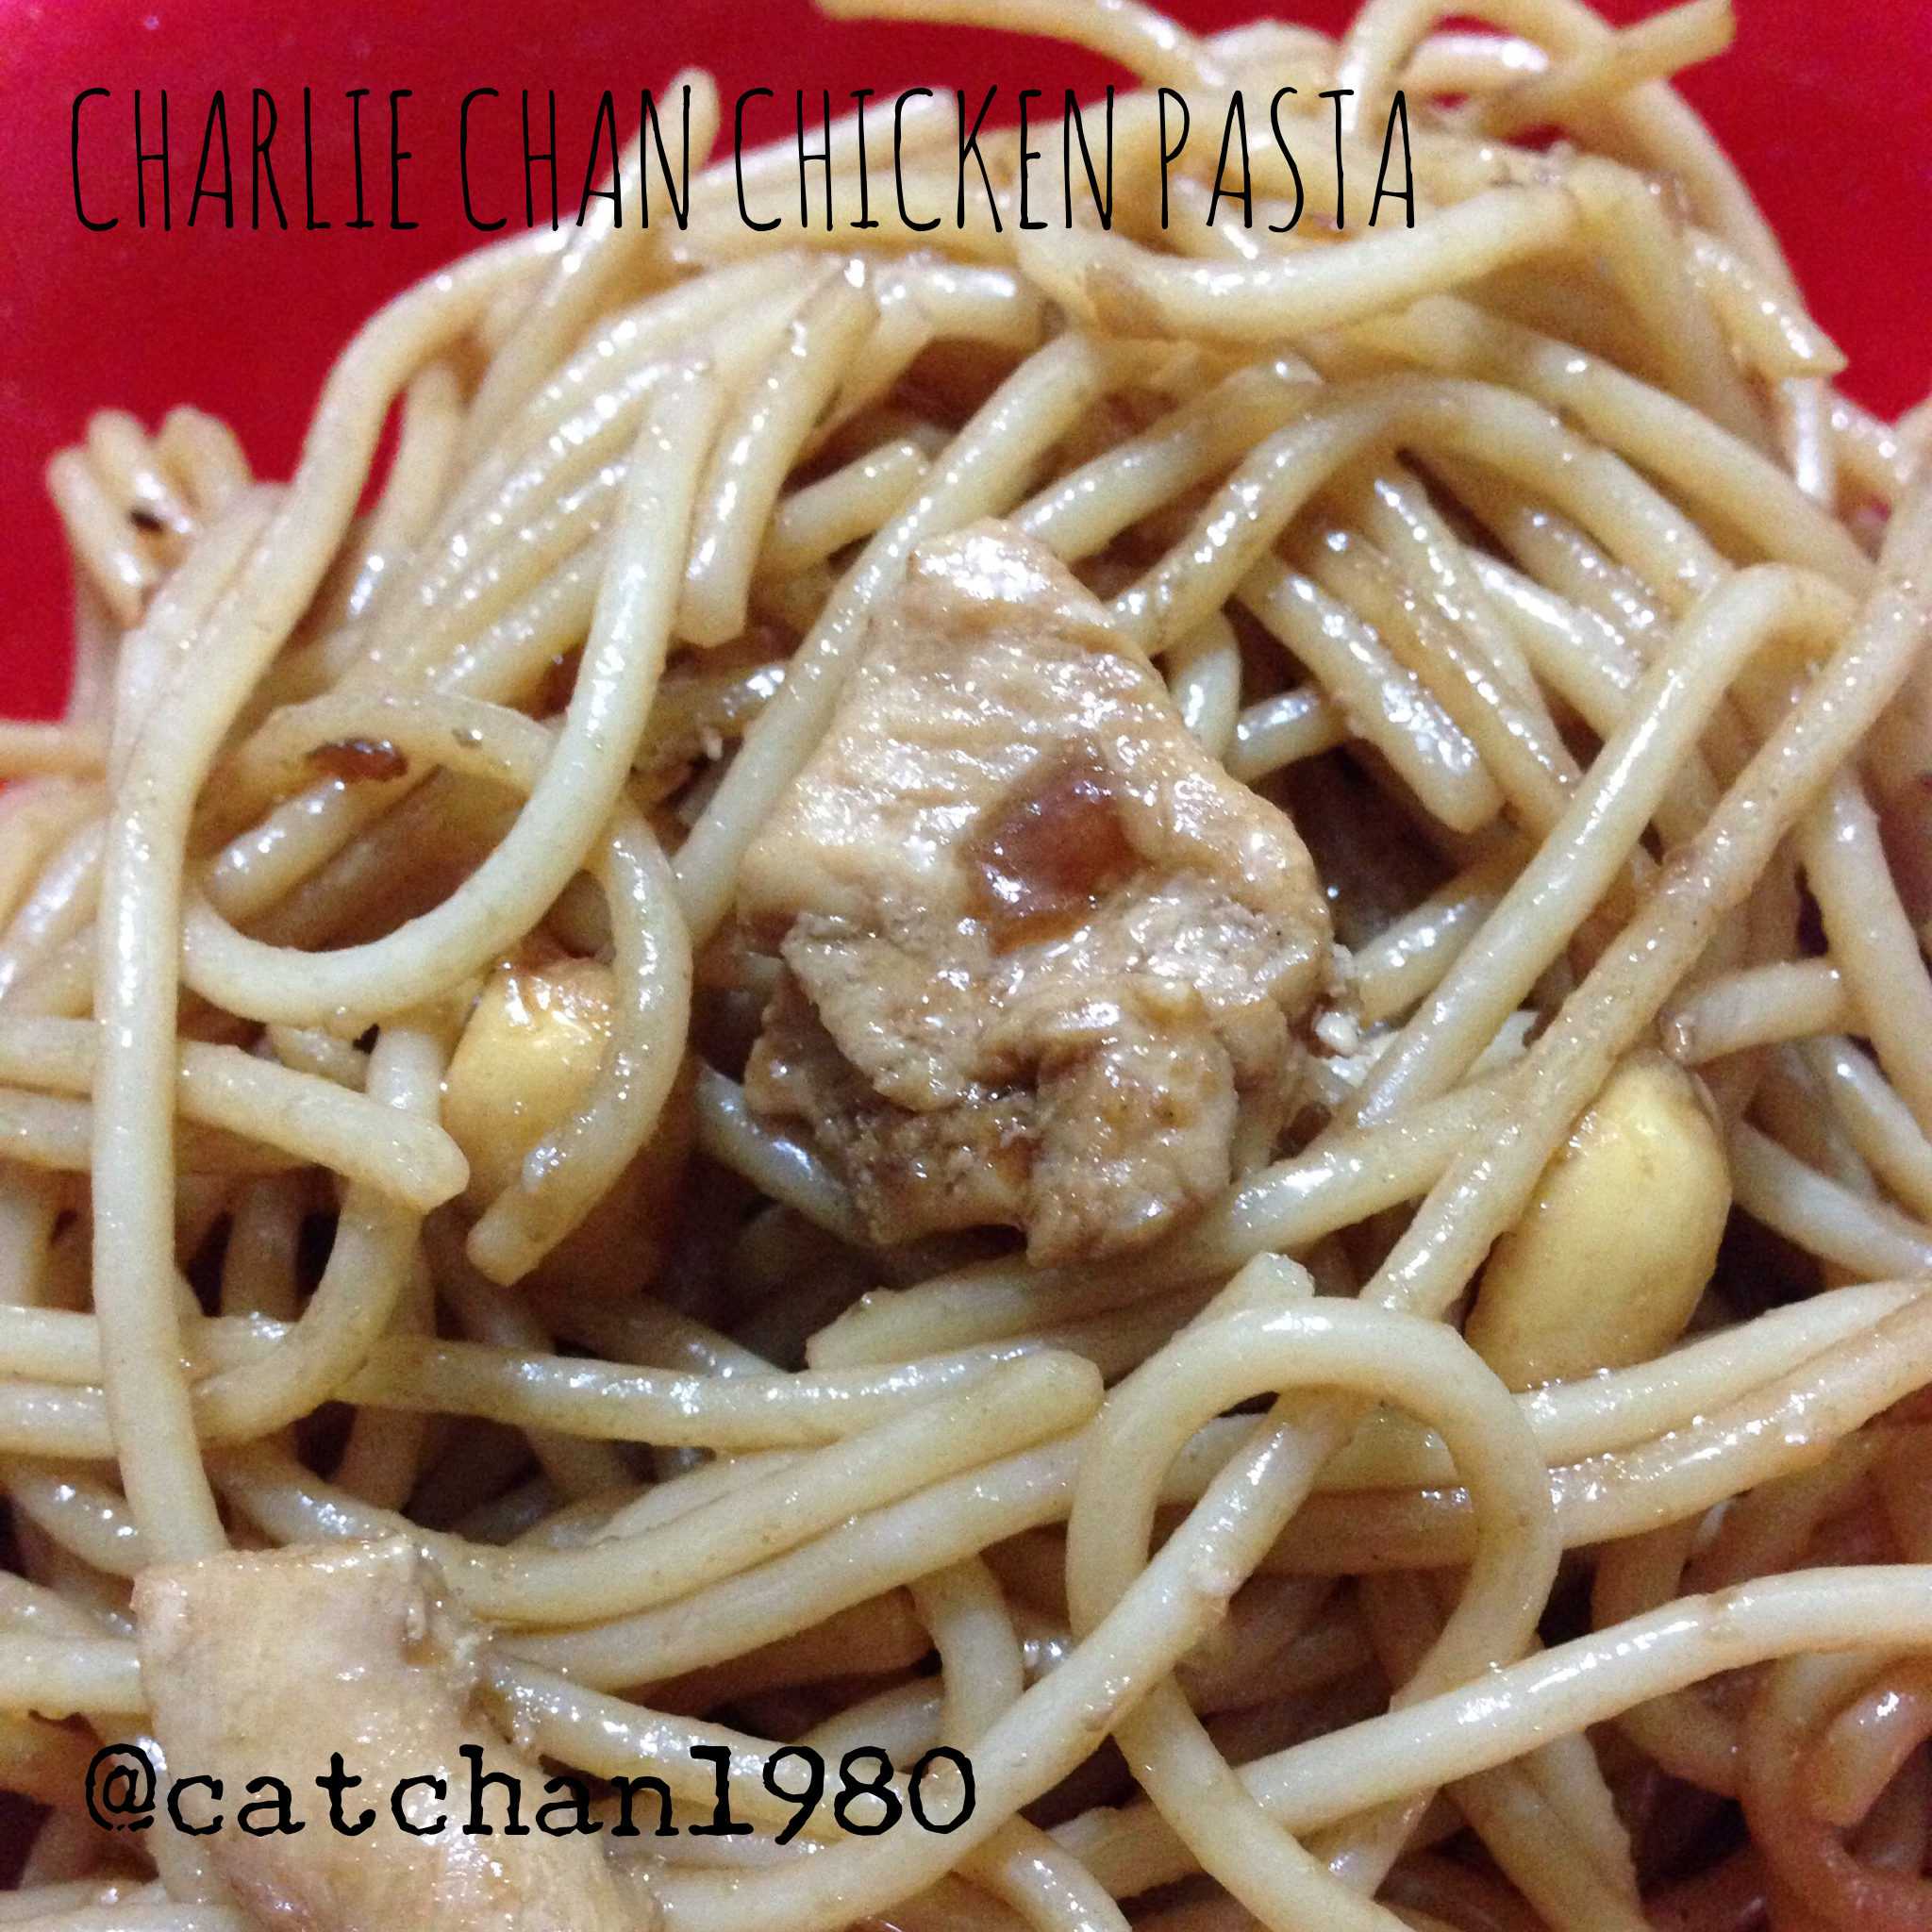 Charlie Chan Chicken Pasta – at home!